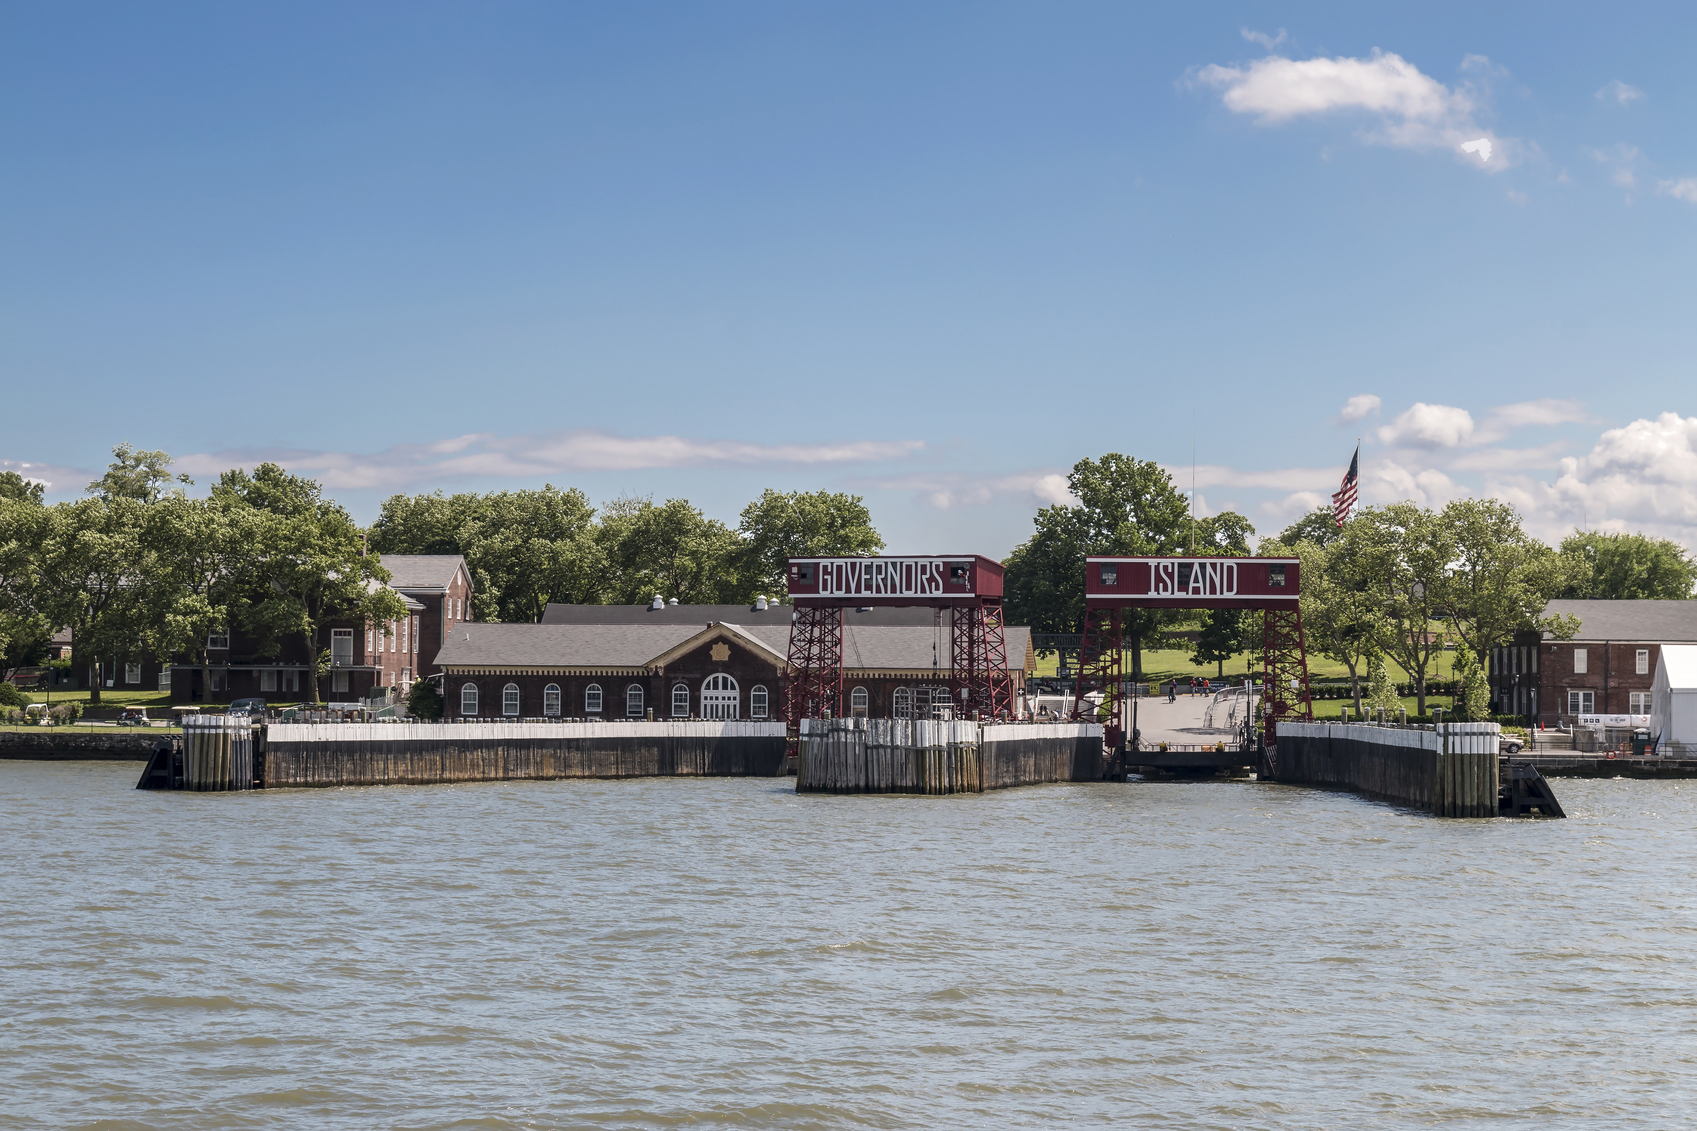 Governor's Island Park is Opening in July